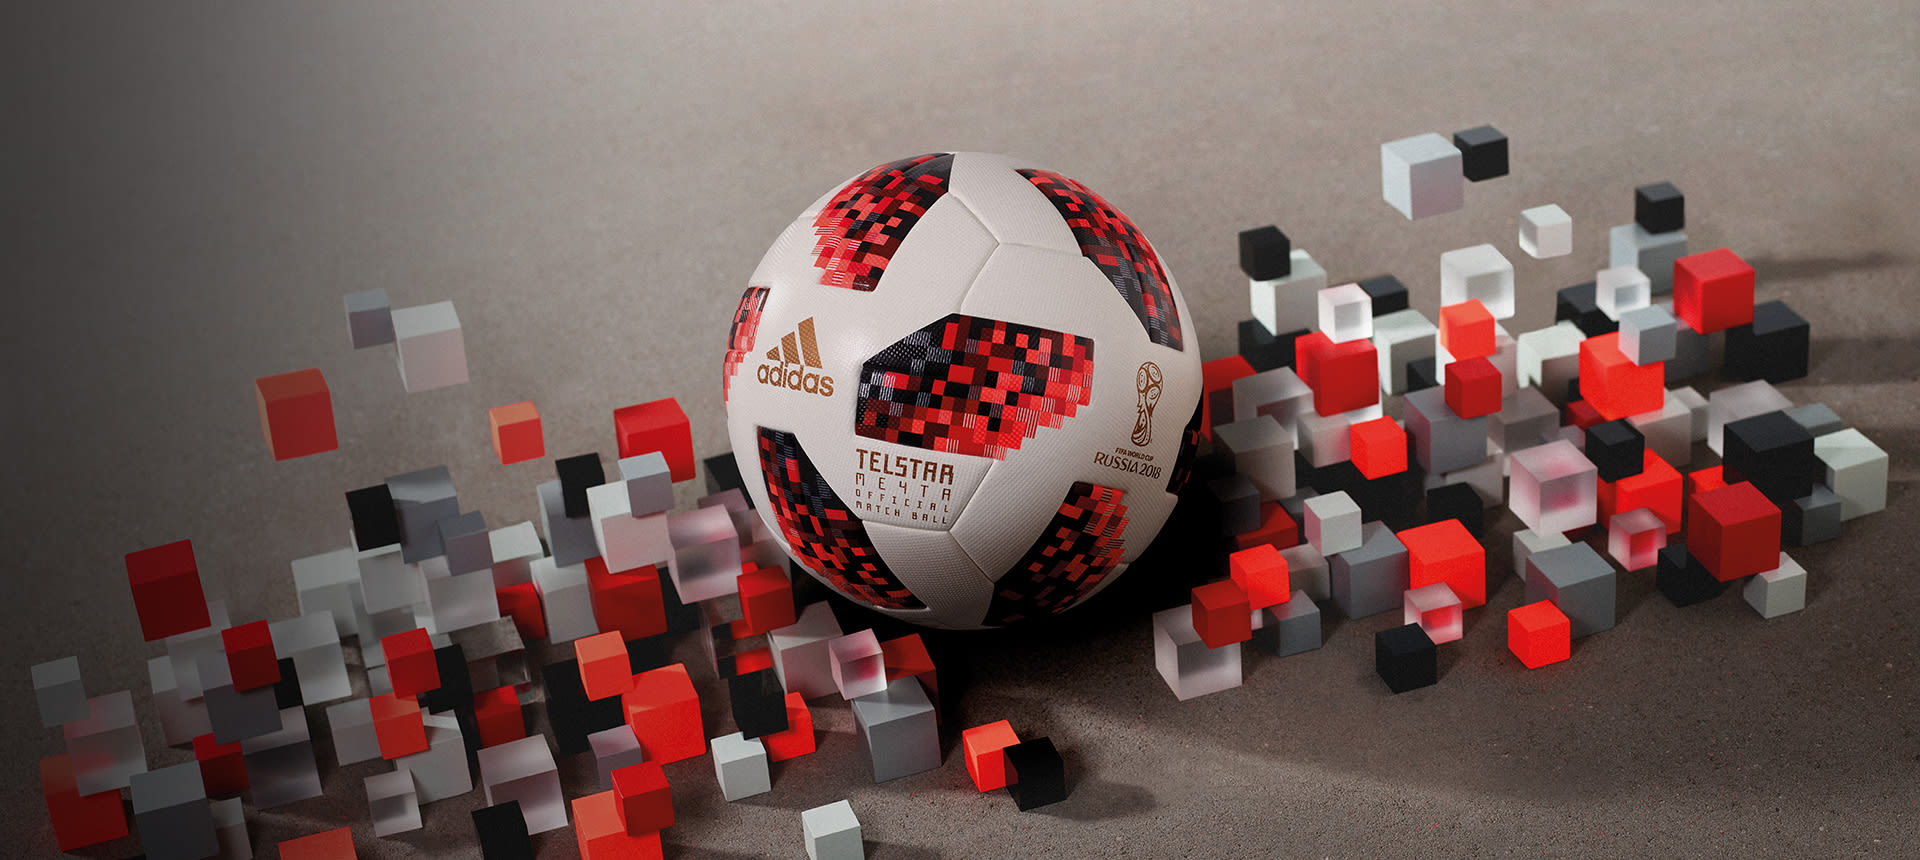 a5e5f673d Telstar 18 | The Official Game Ball of the 2018 FIFA World Cup&trade ...